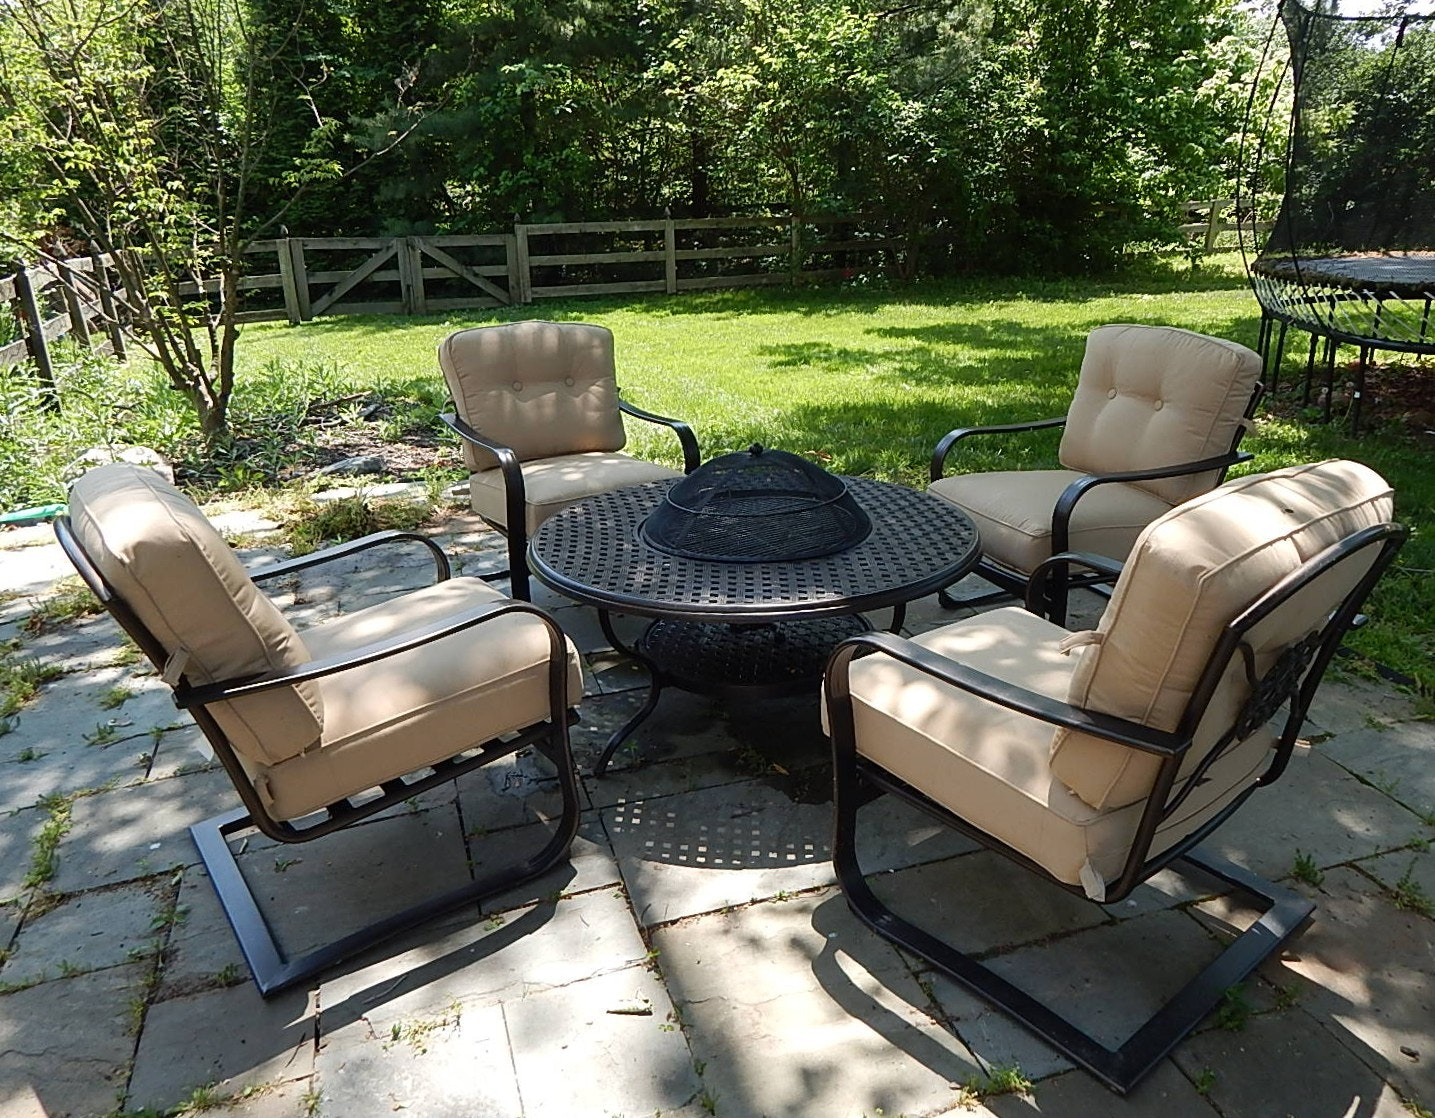 Watsonu0027s Patio Fire Pit/Grill Table And Four Chairs ...